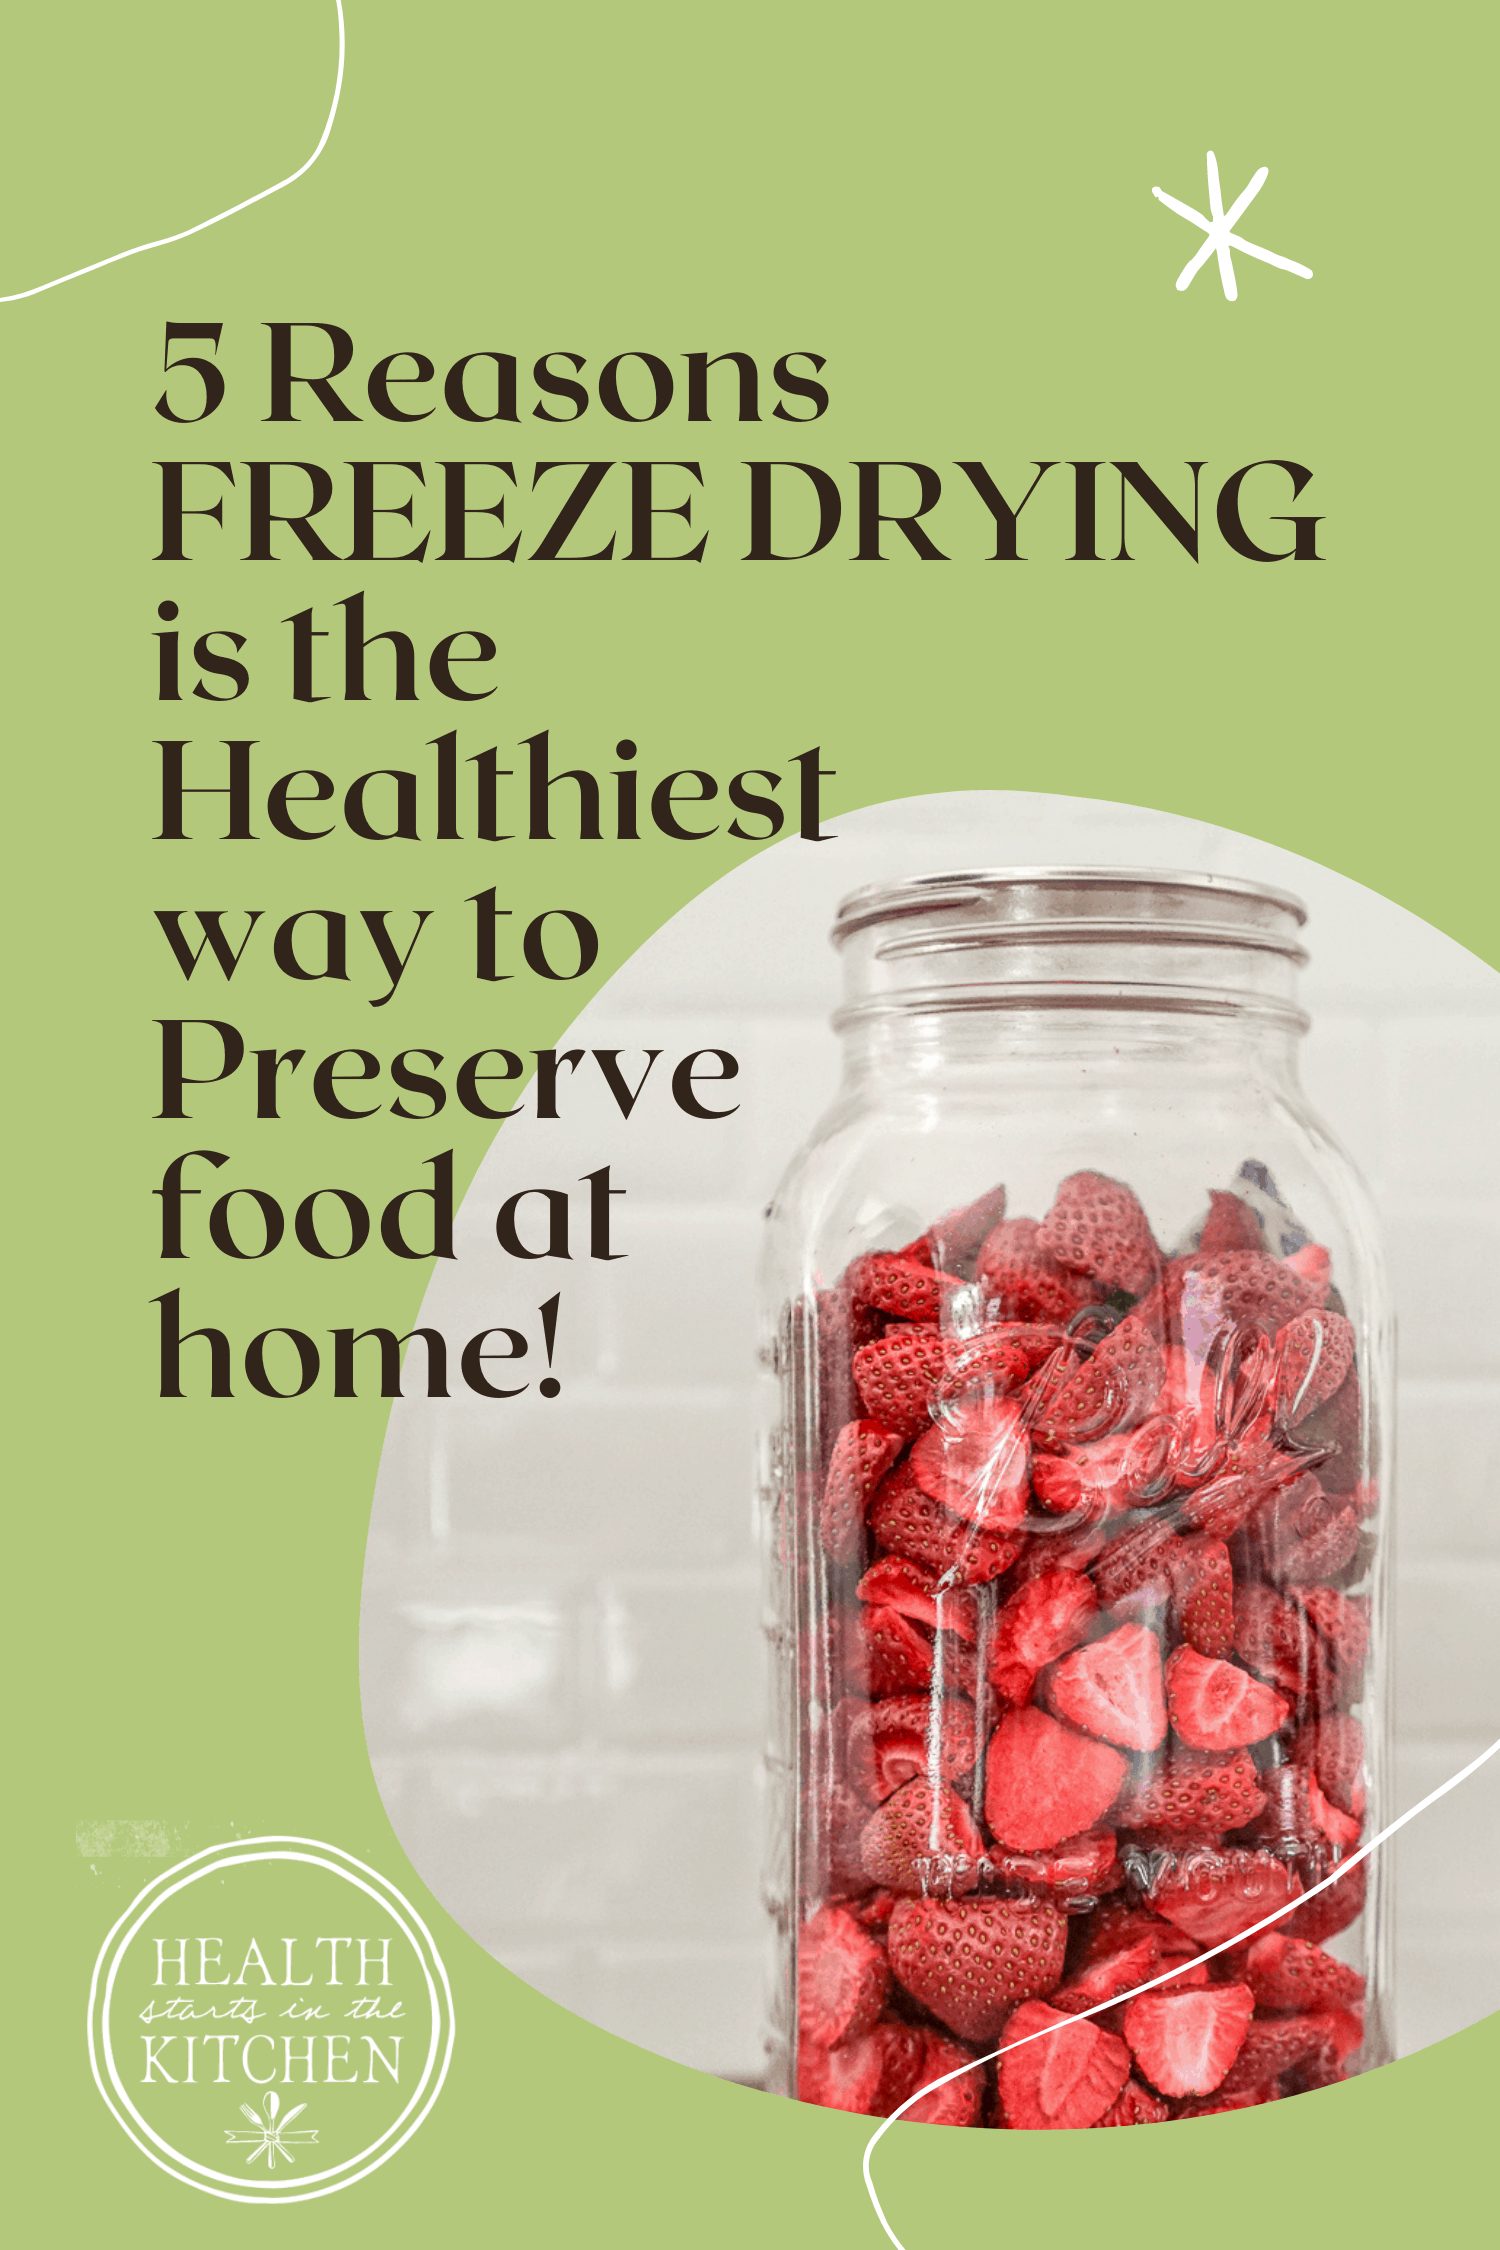 5 Reasons FREEZE DRYING is the Healthiest way to Preserve food at home written on a green background next to a jar of freeze dried strawberries